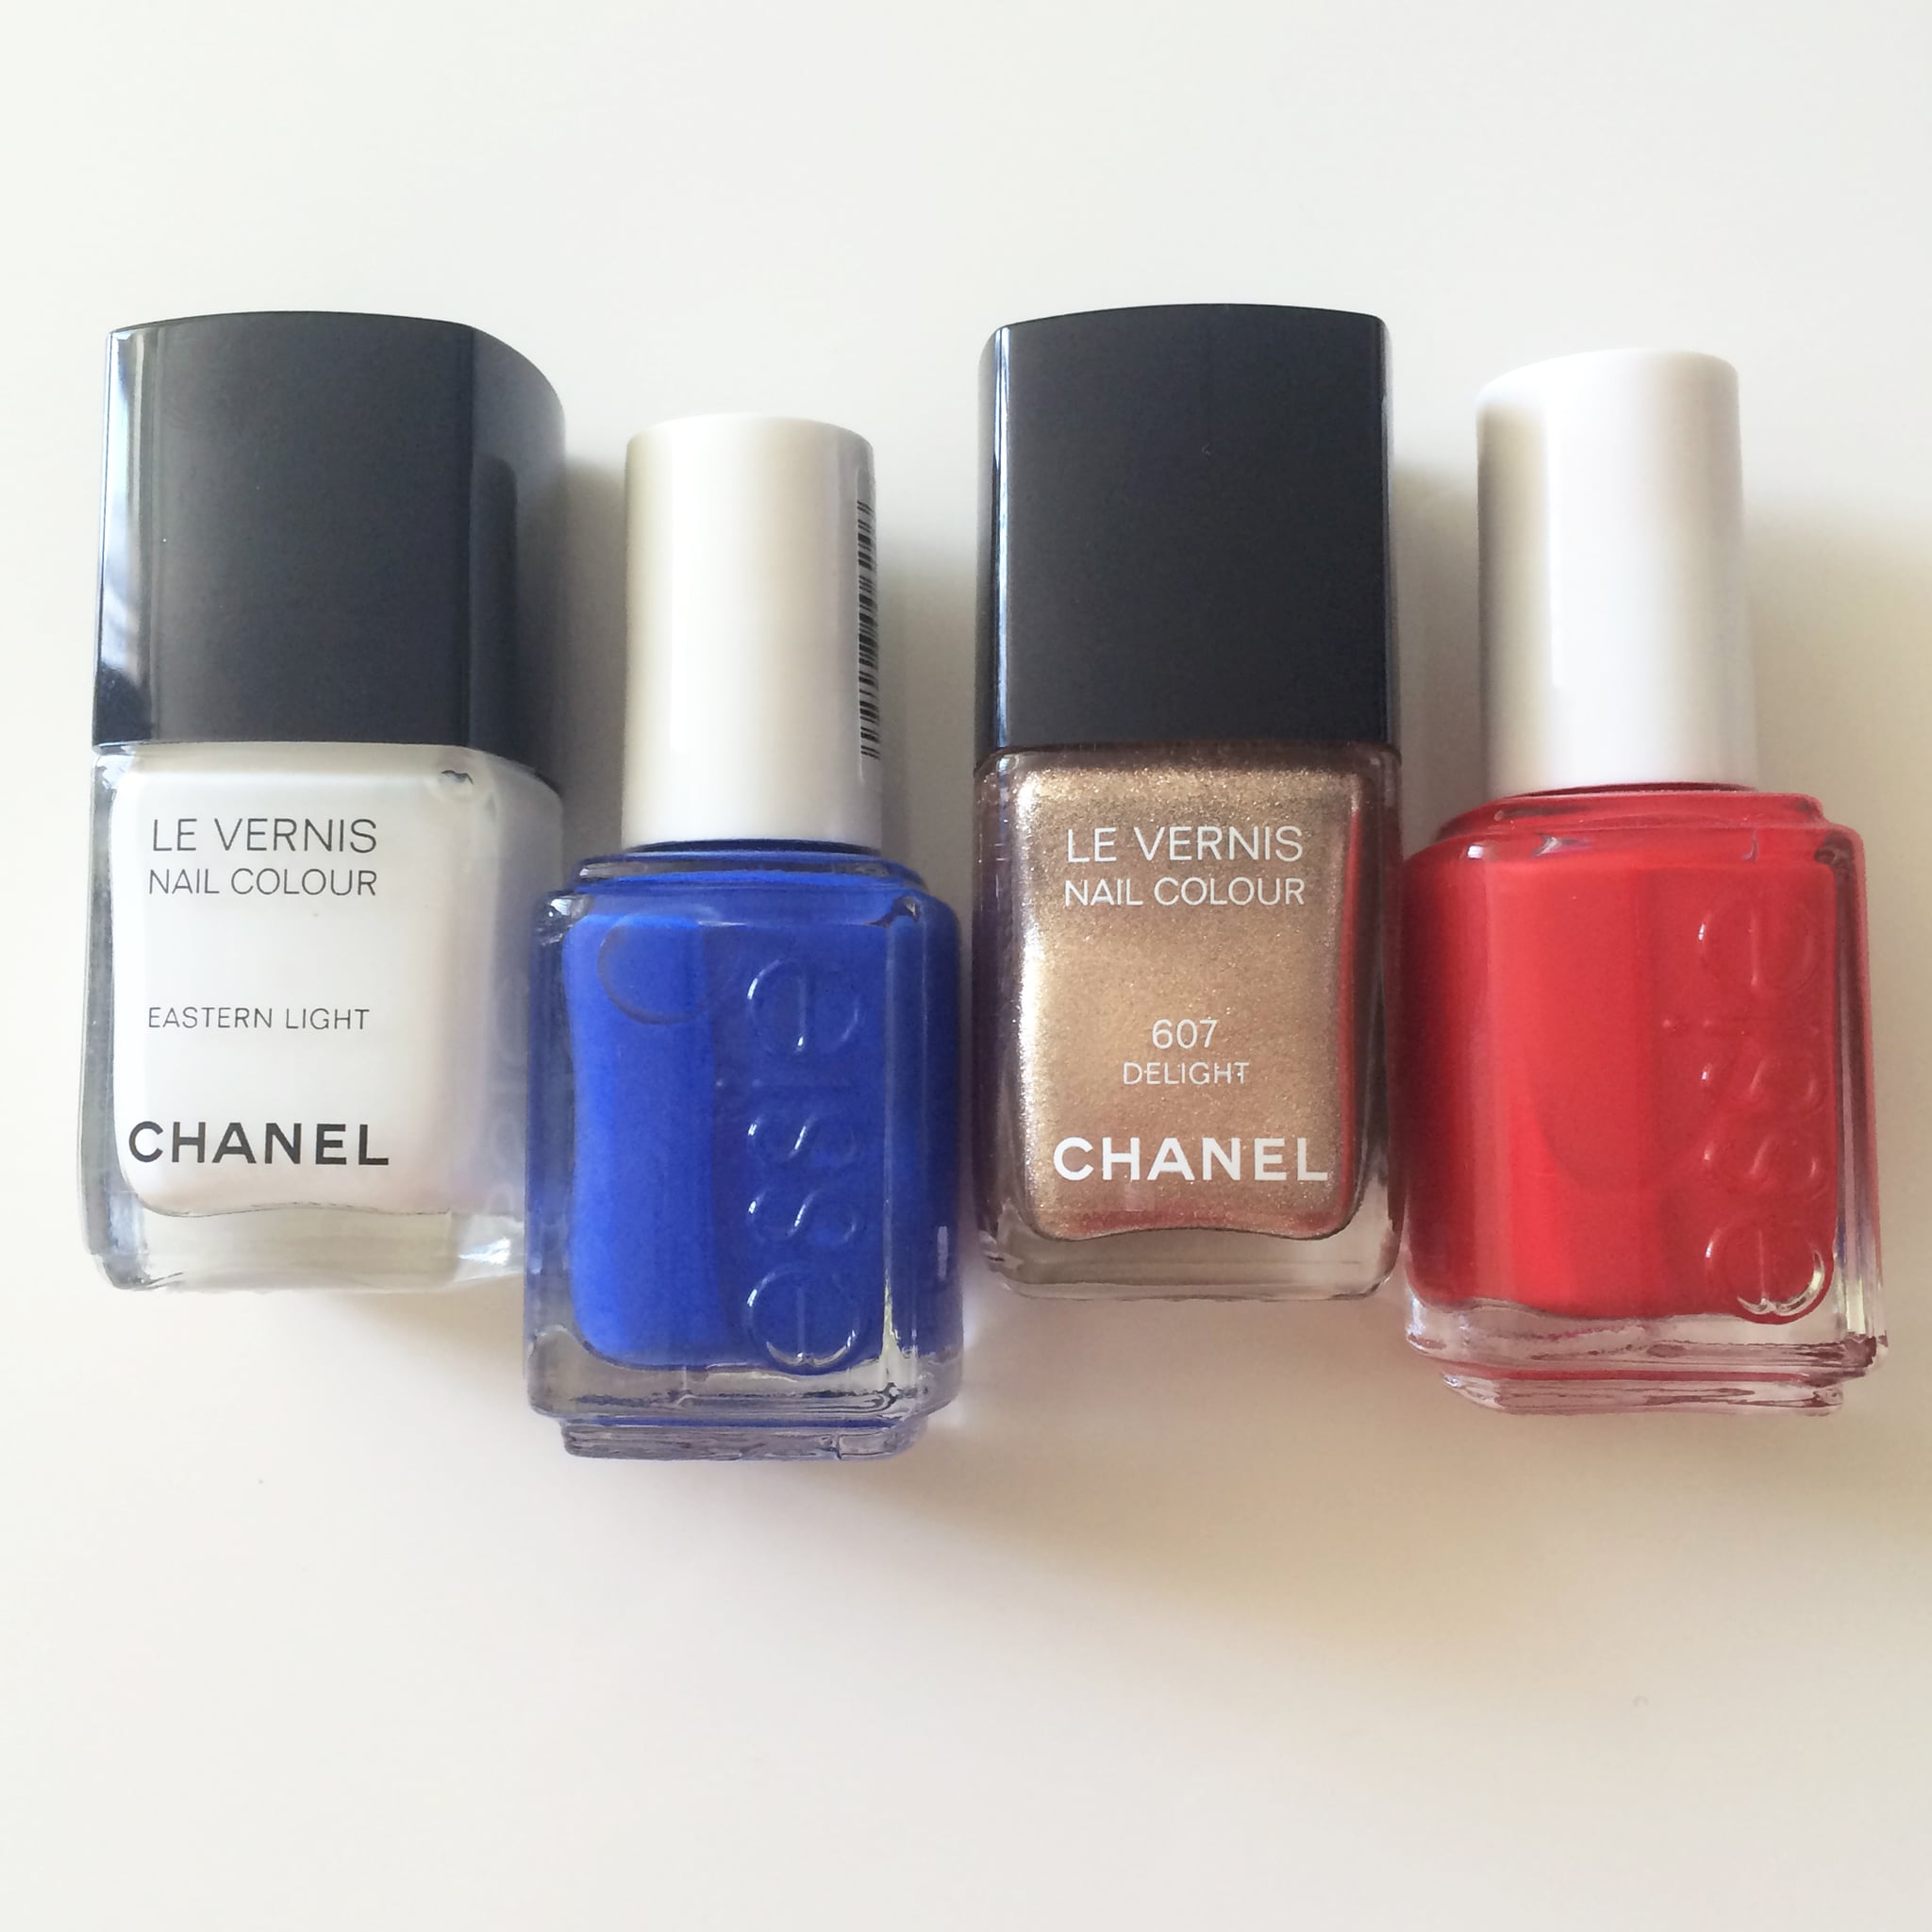 The Nautical Nail Polishes